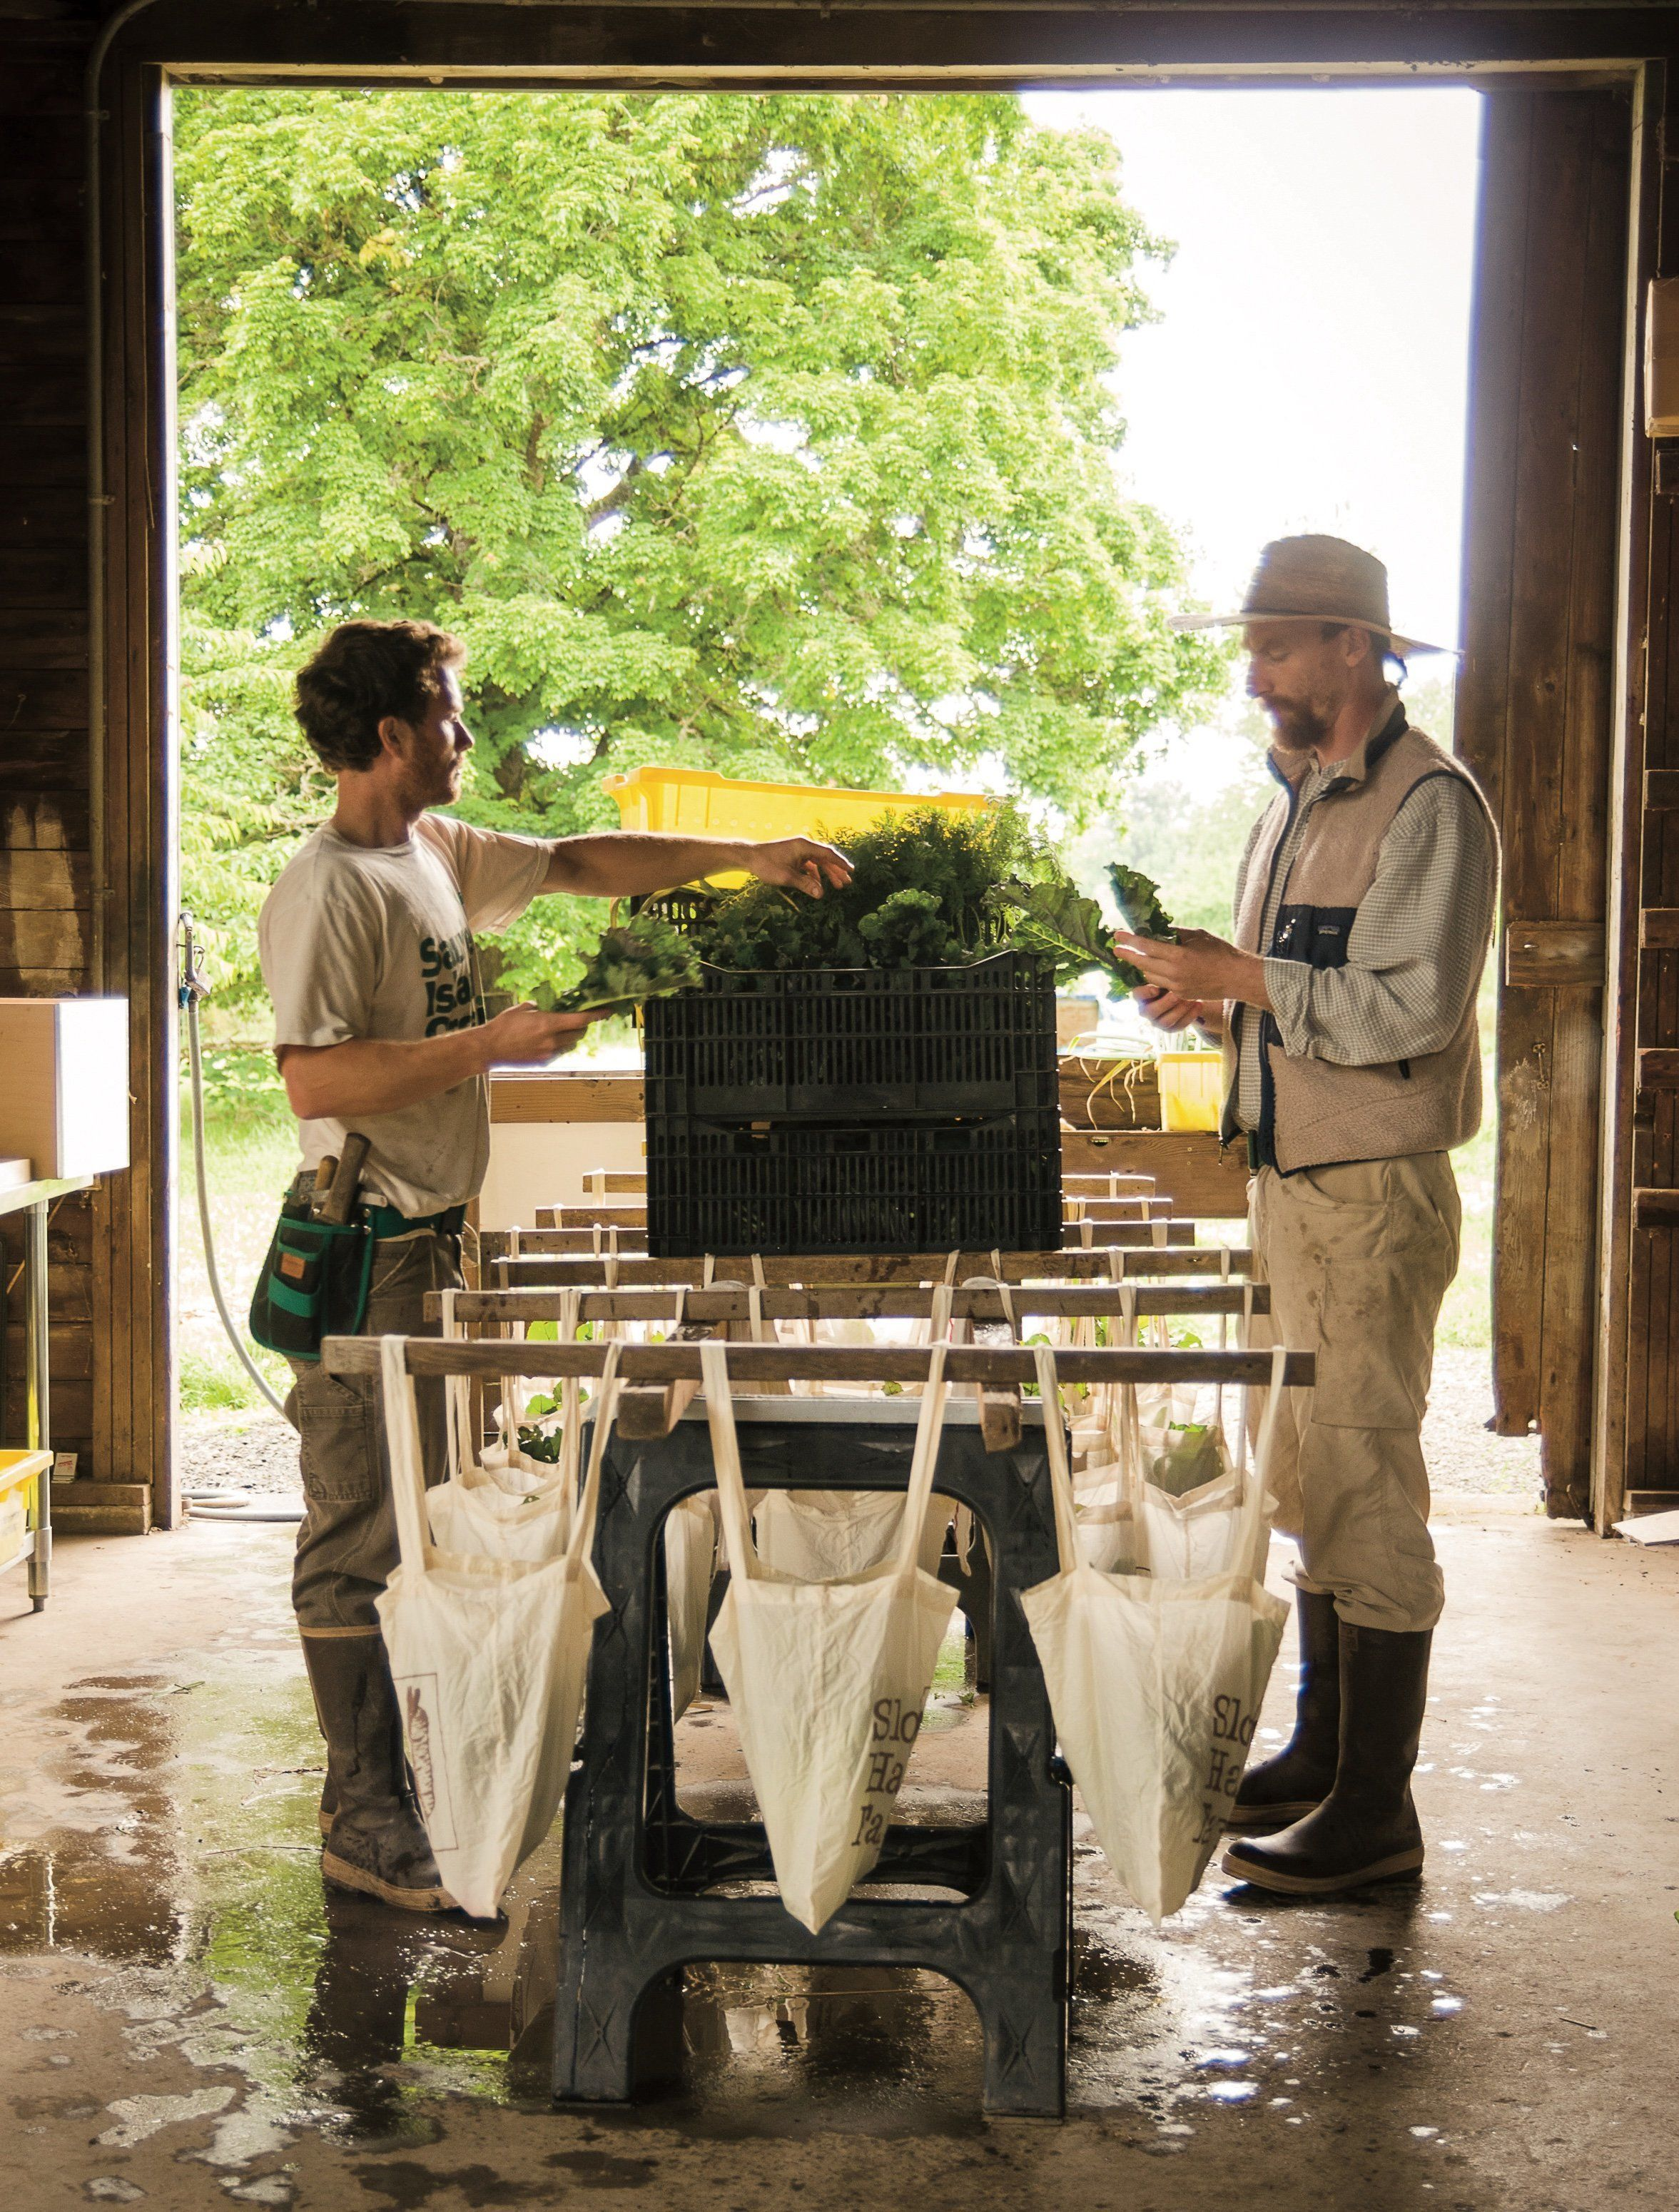 Josh Volk (right) prepares CSA boxes at his farm in Portland, Oregon. Photo from Compact Farms, used with permission from Sto